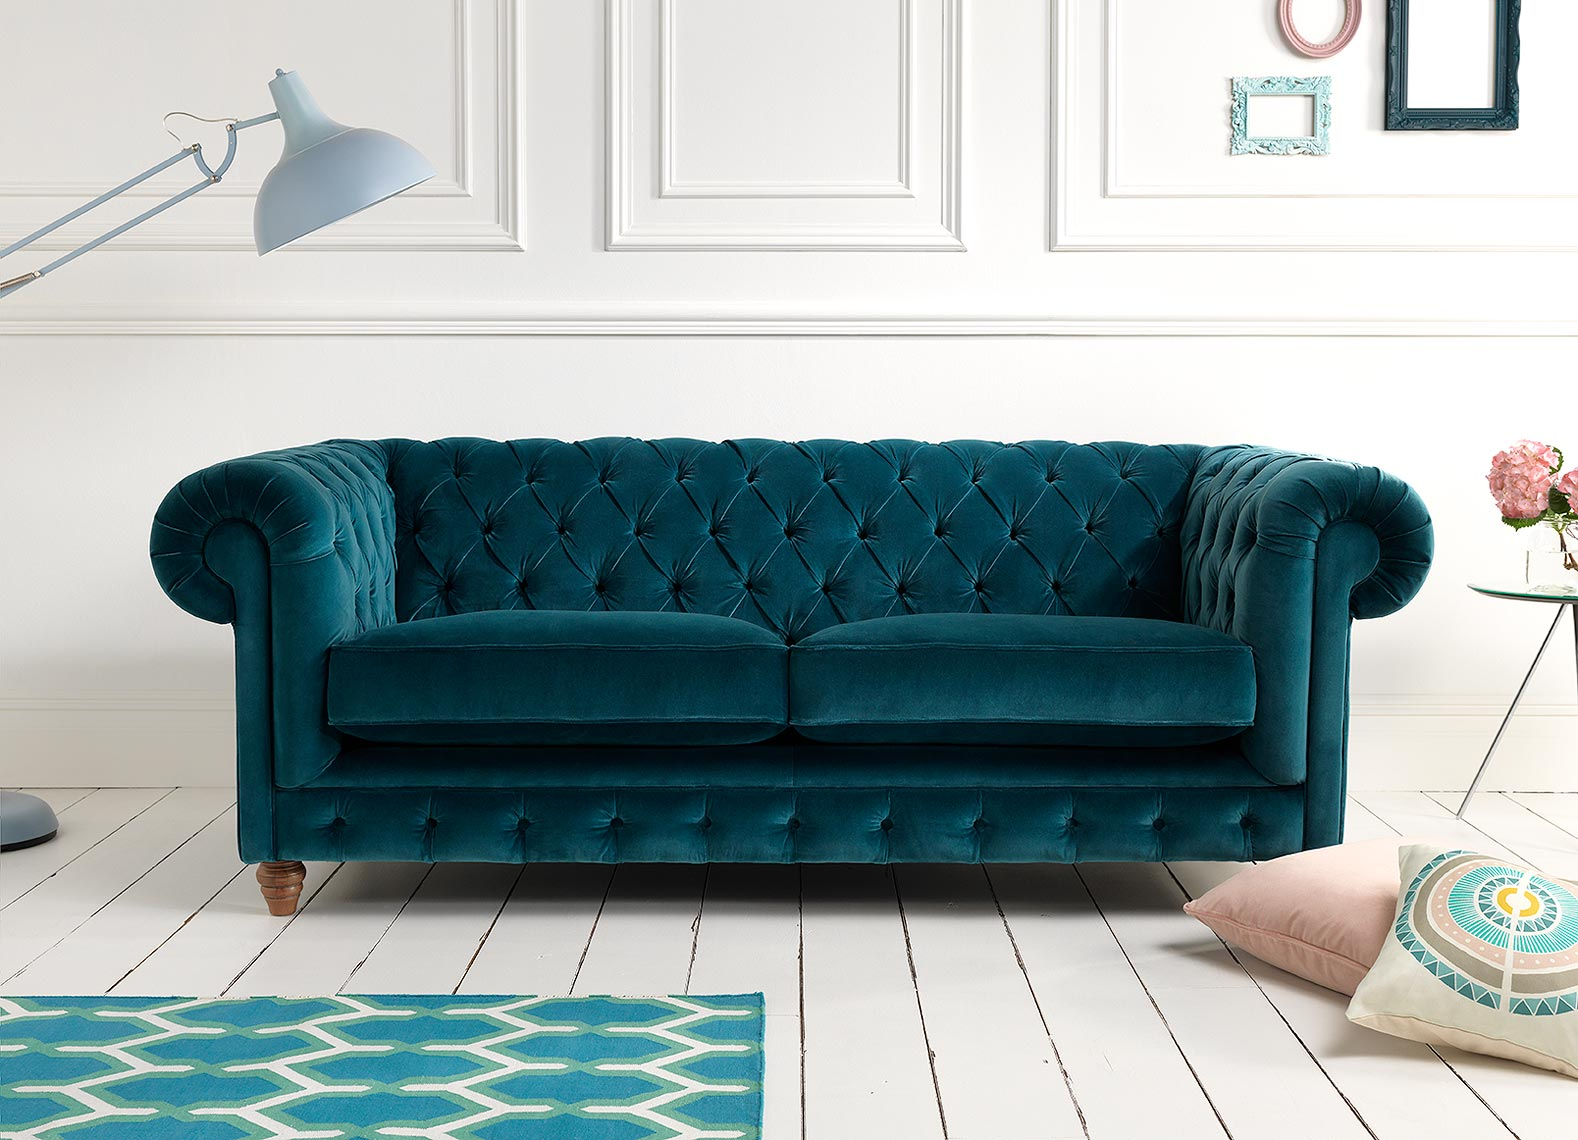 Teal-velvet-Chesterfield_crop_8bit